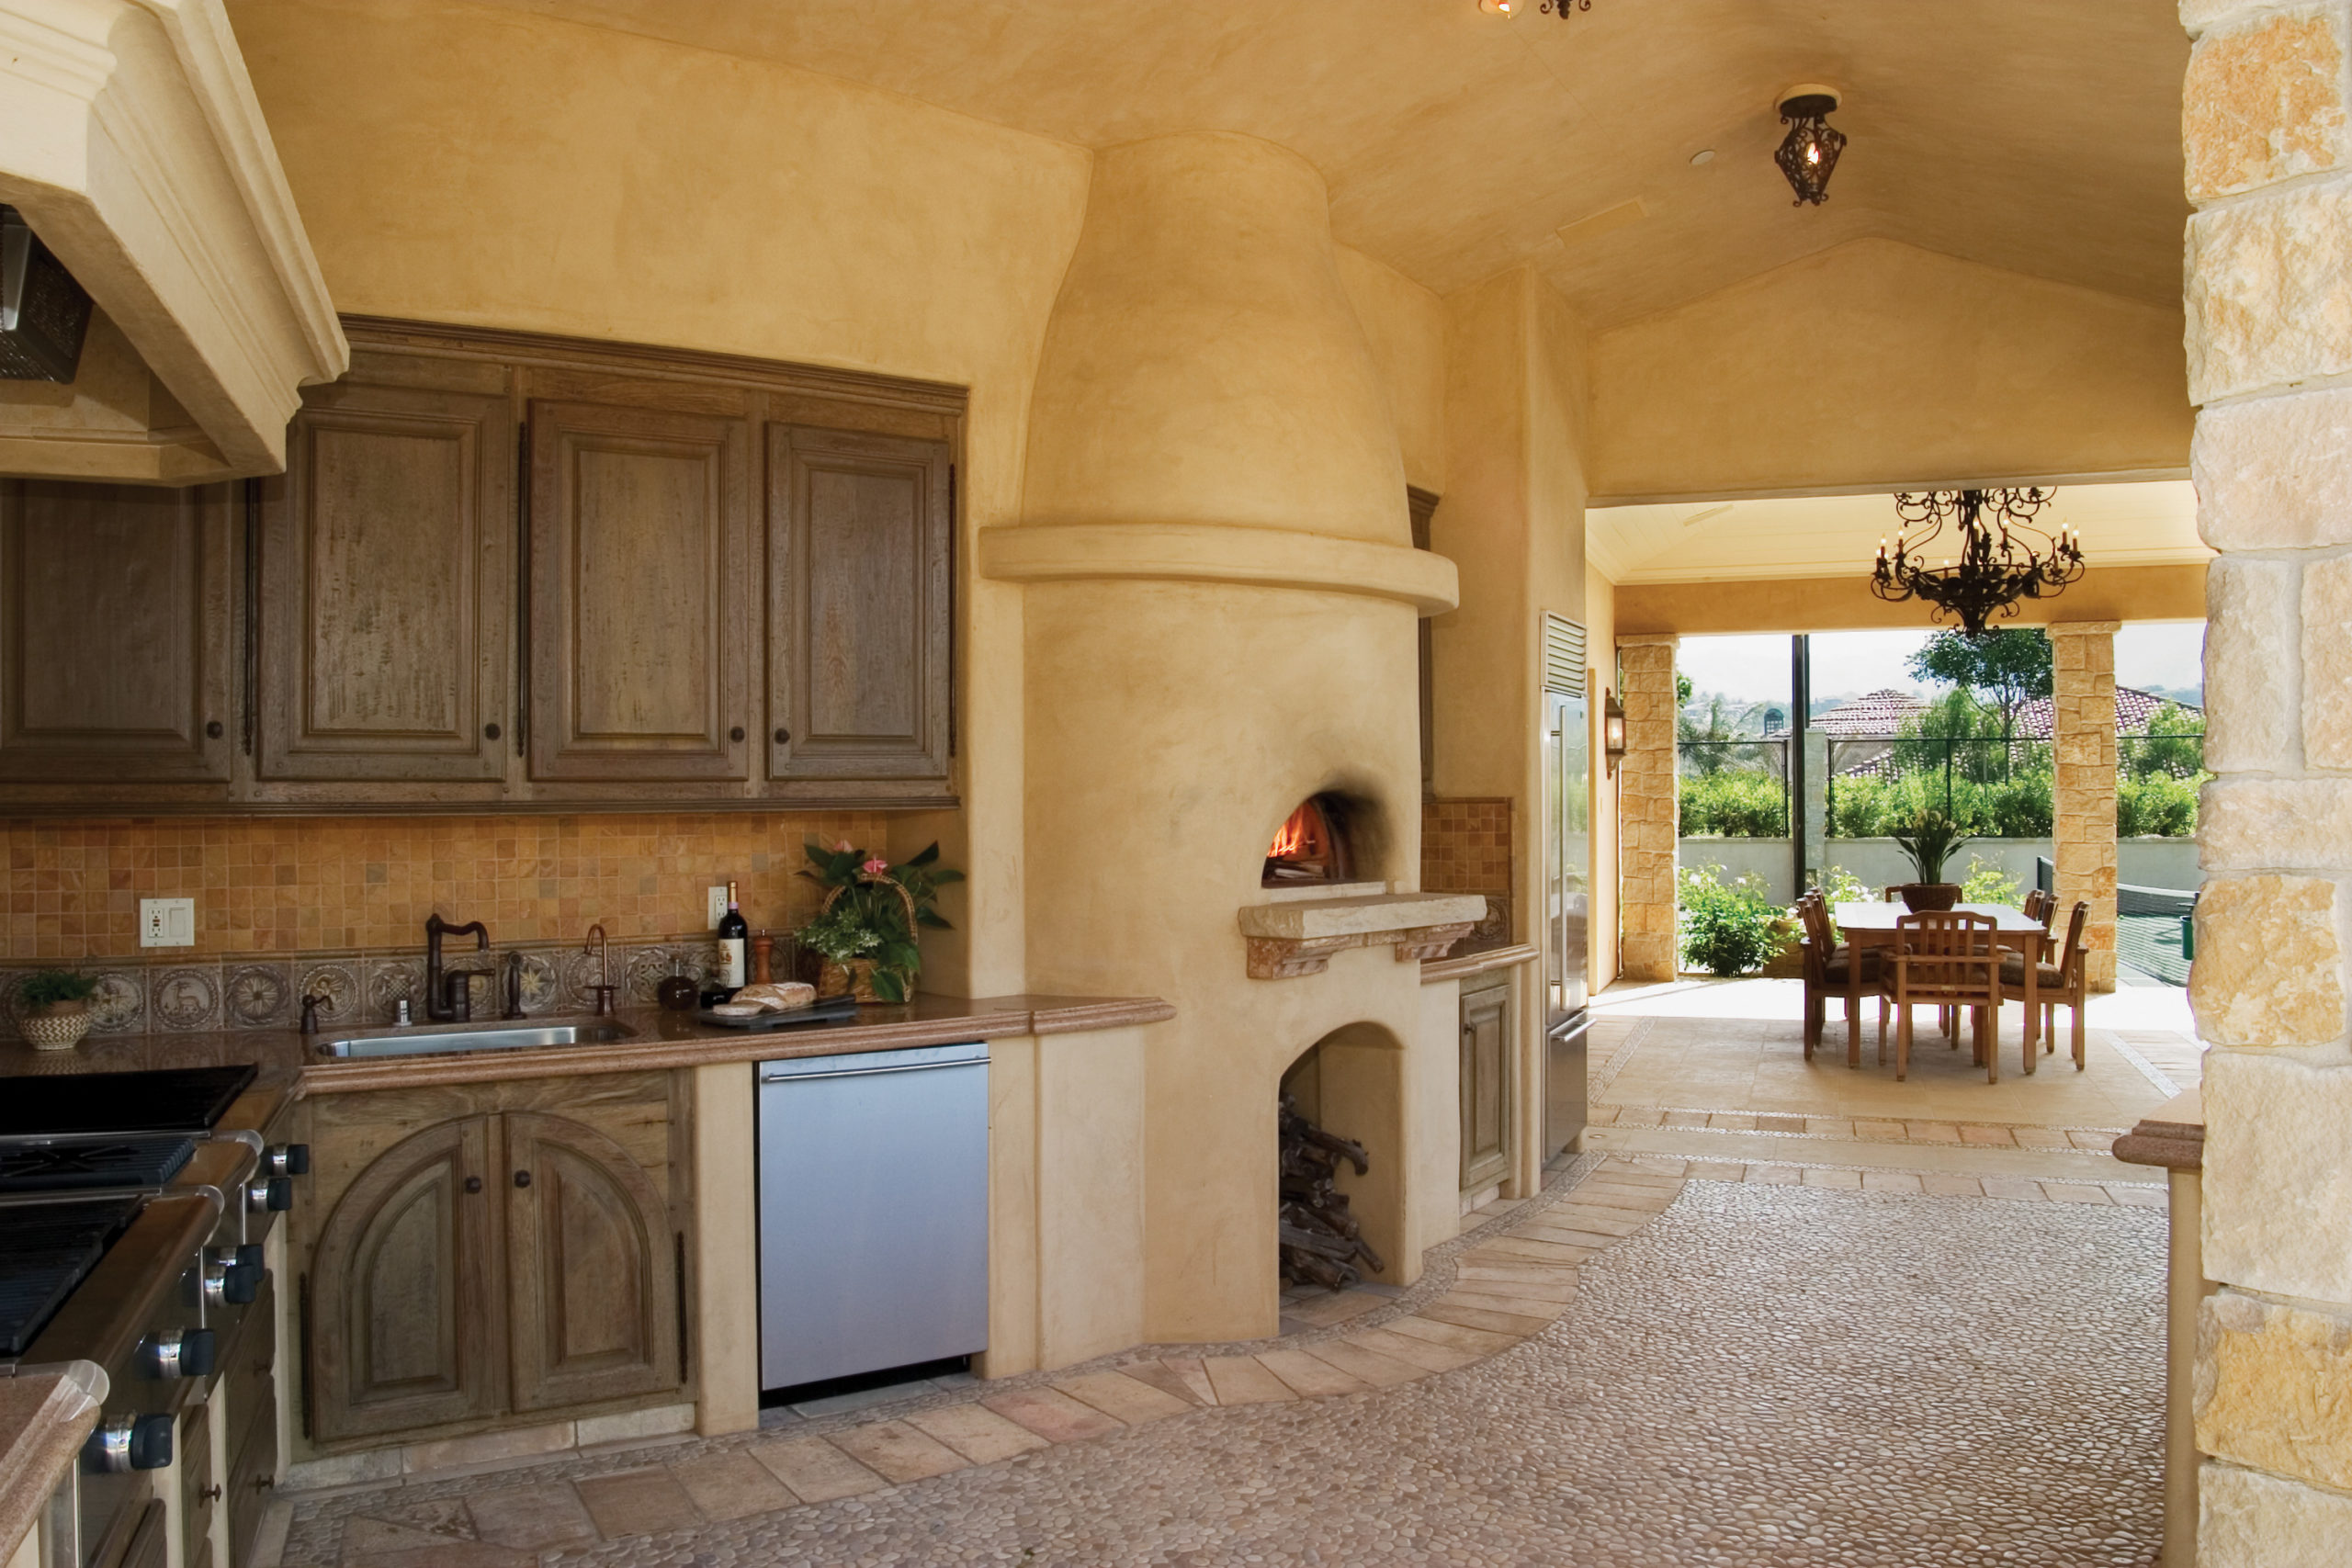 residential mediterranean style kitchen with Mugnaini wood oven